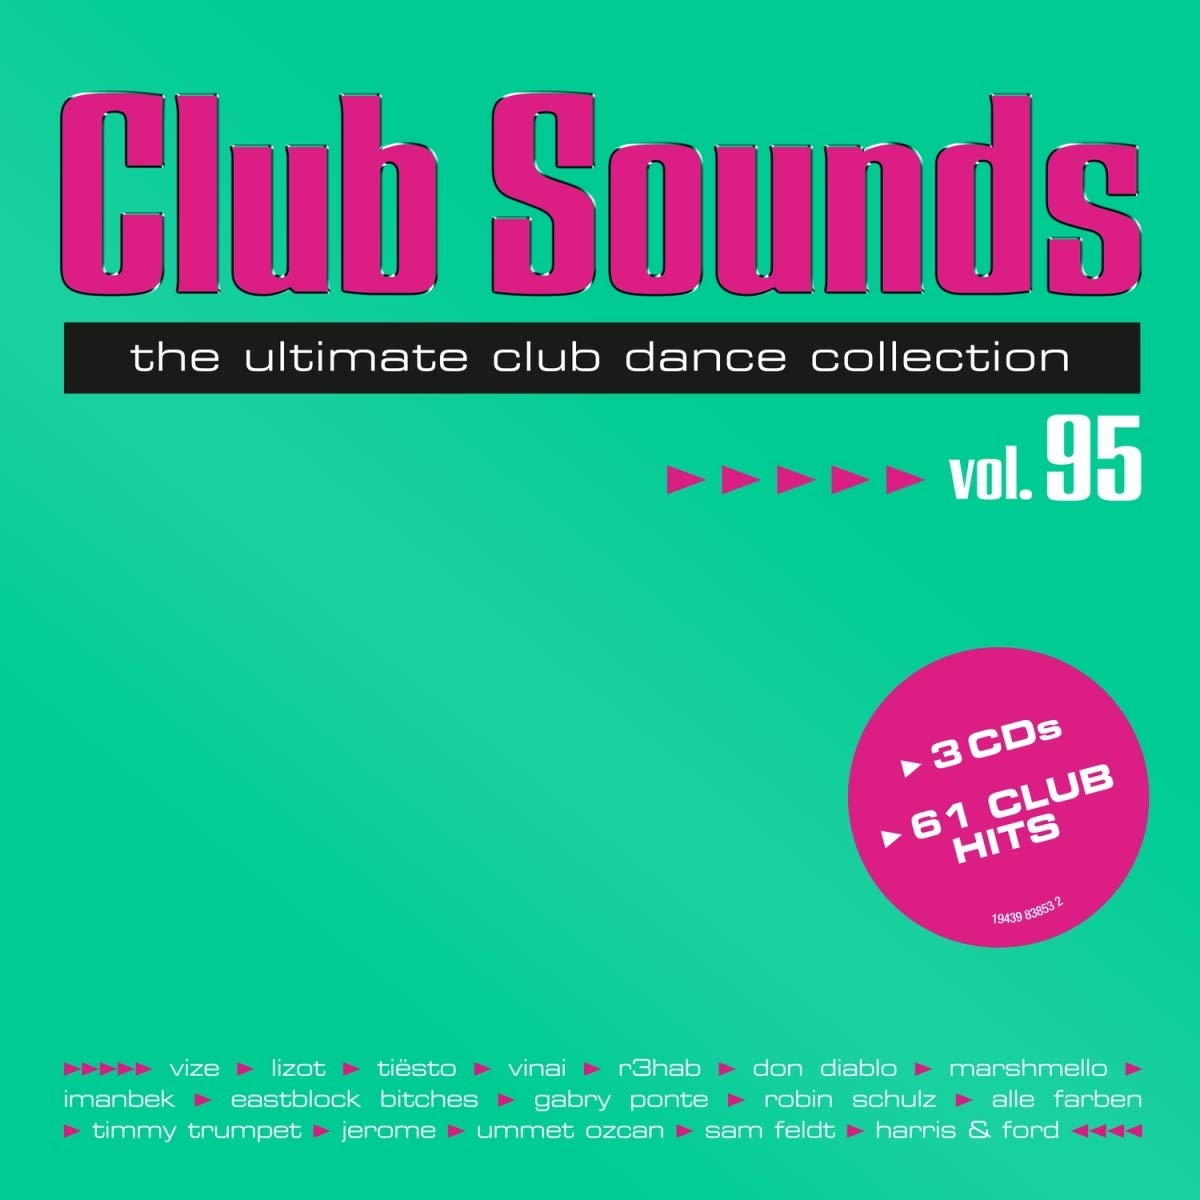 Club Sounds 95